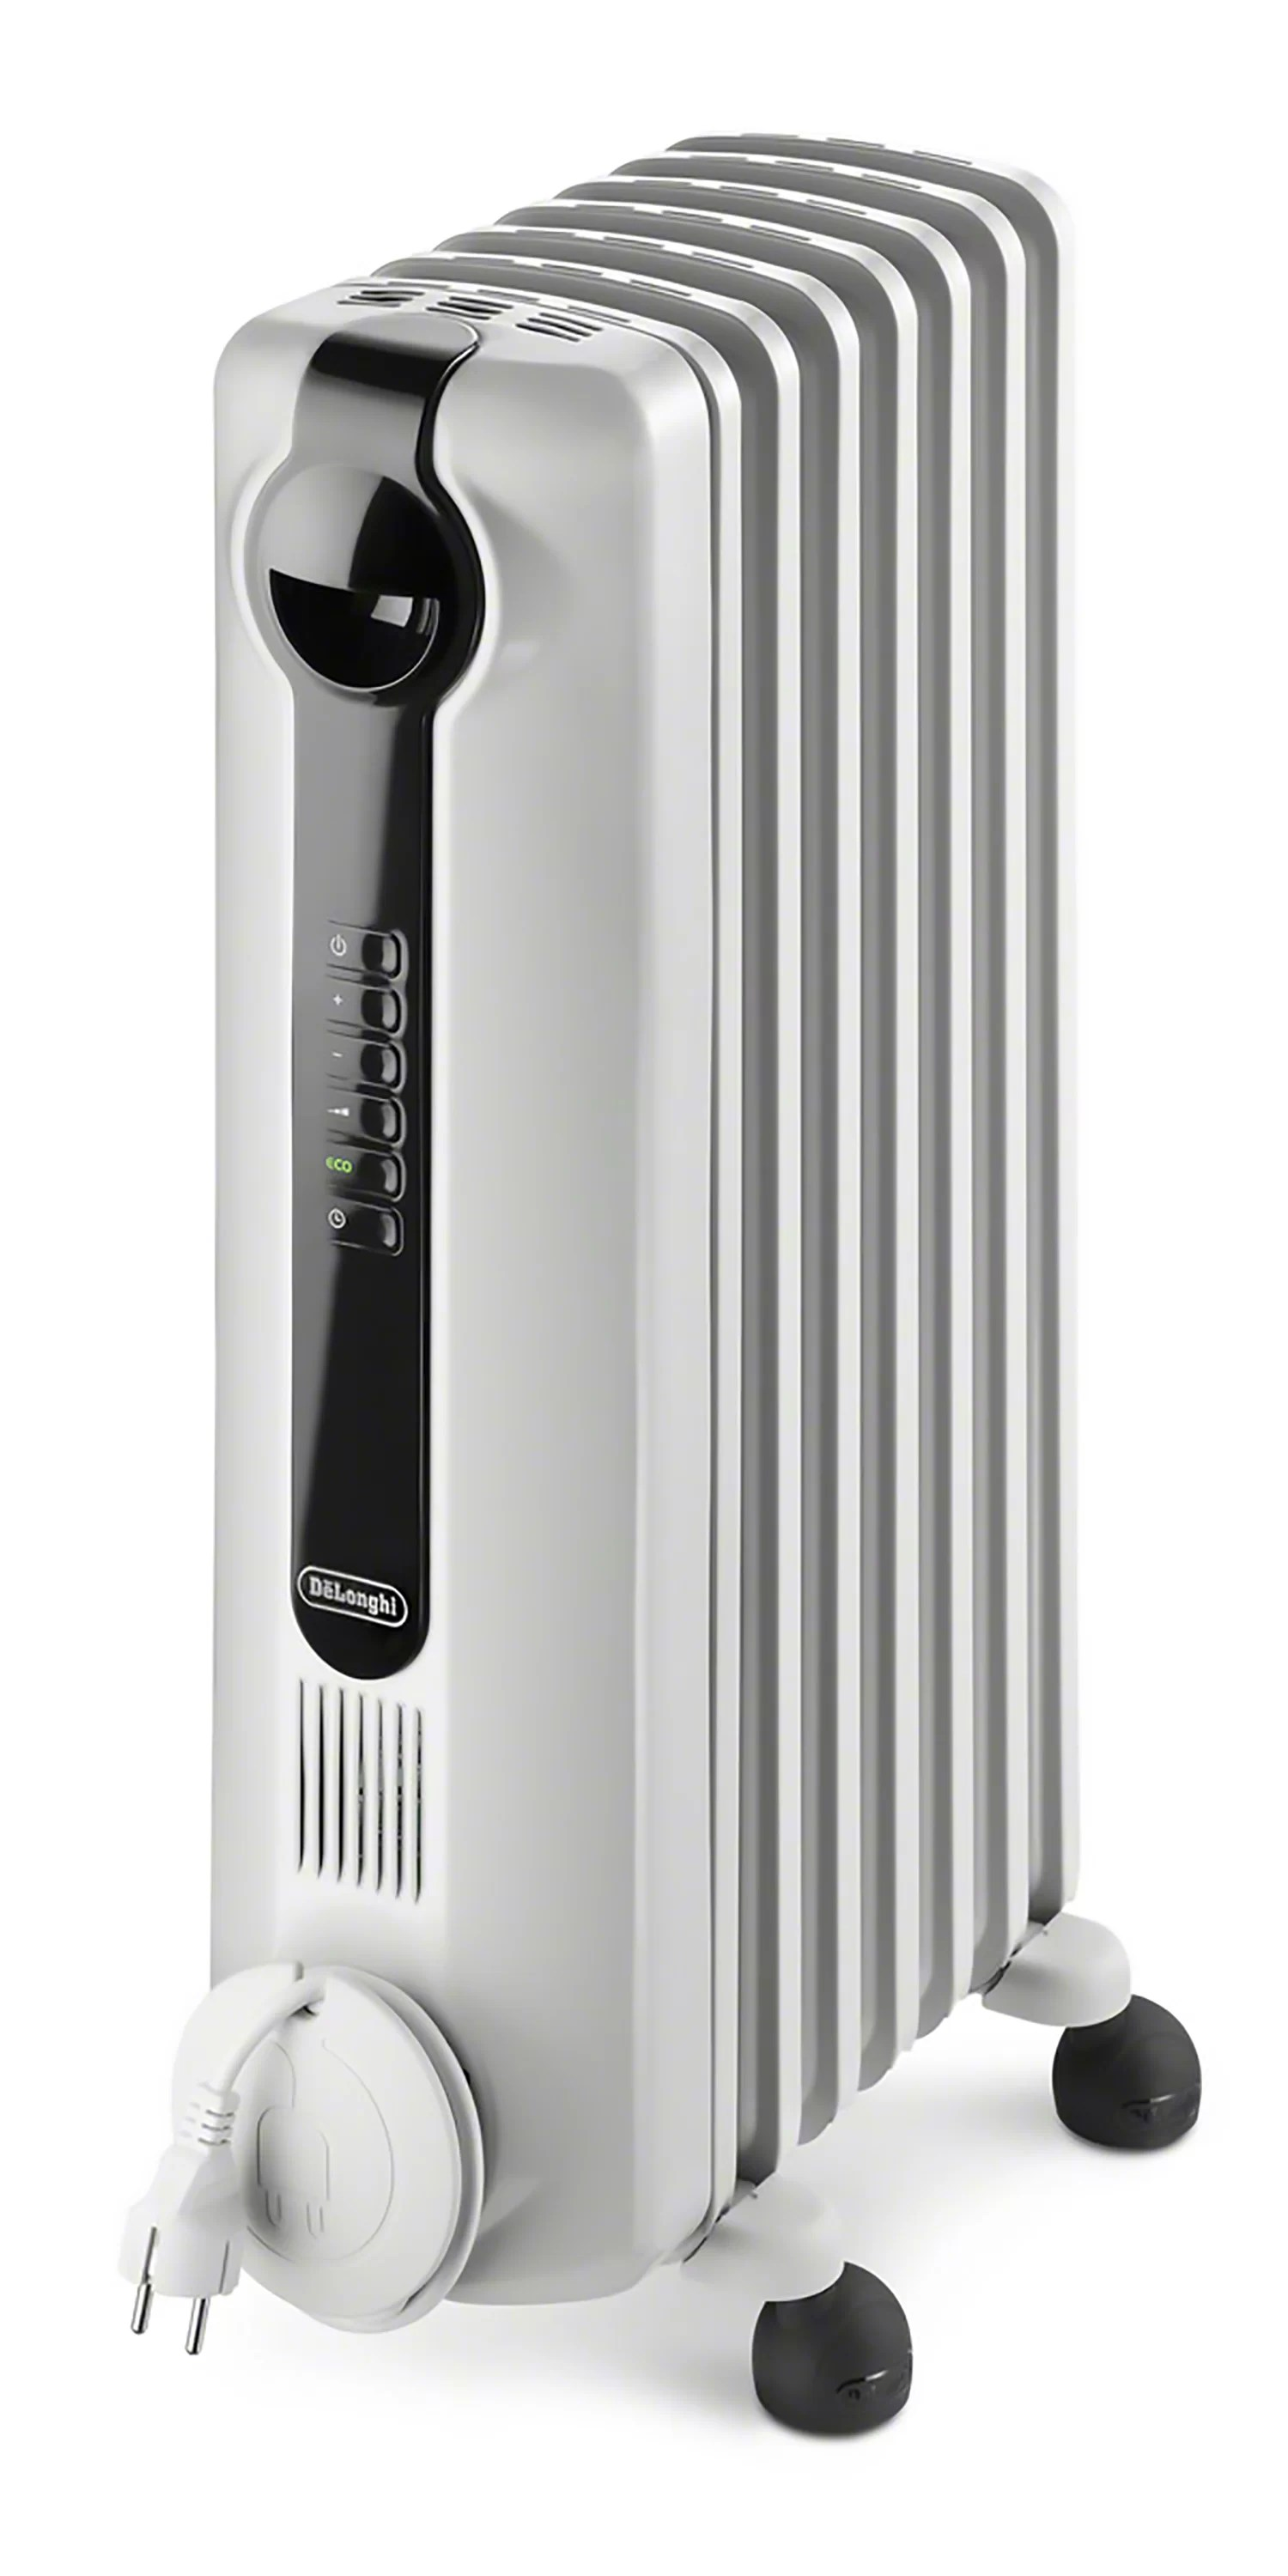 Radiant Heater 1 500 Watt Portable Electric Radiant Tower Heater